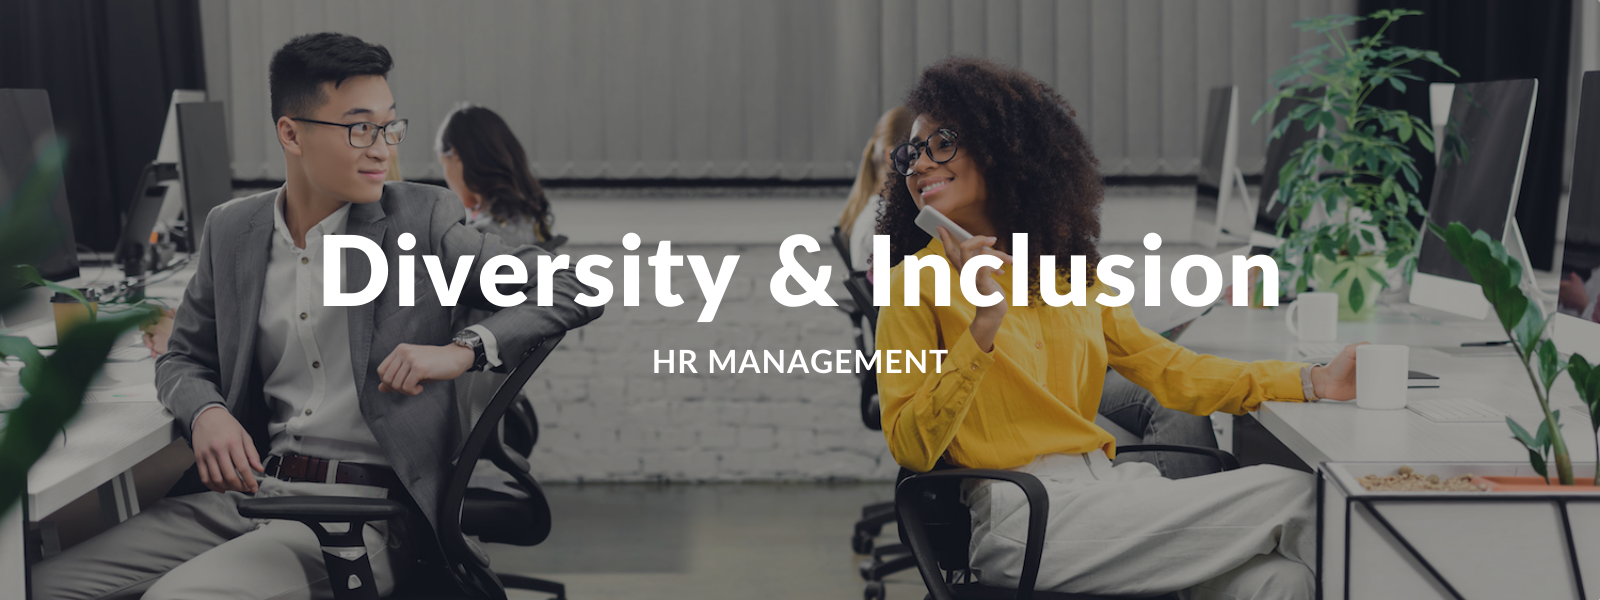 Diversity and Inclusion Best Practices for HR Managers